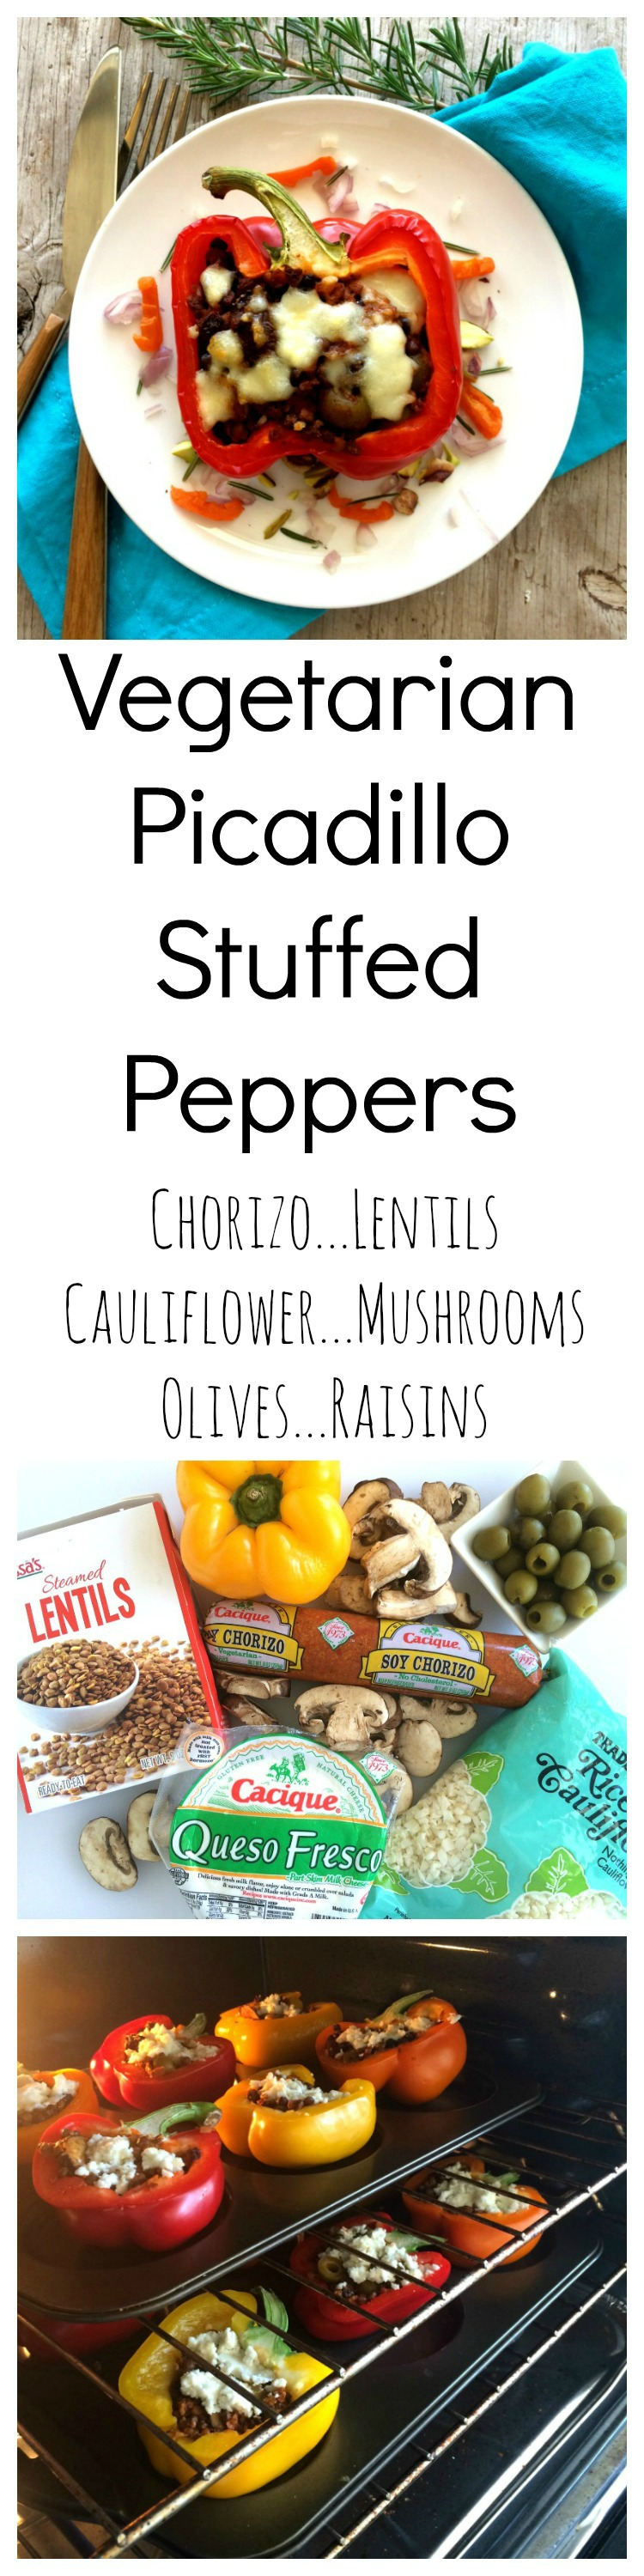 Picadillo Stuffed Peppers with Chorizo, Lentils, Cauliflower and Mushrooms on ShockinglyDelicious.com